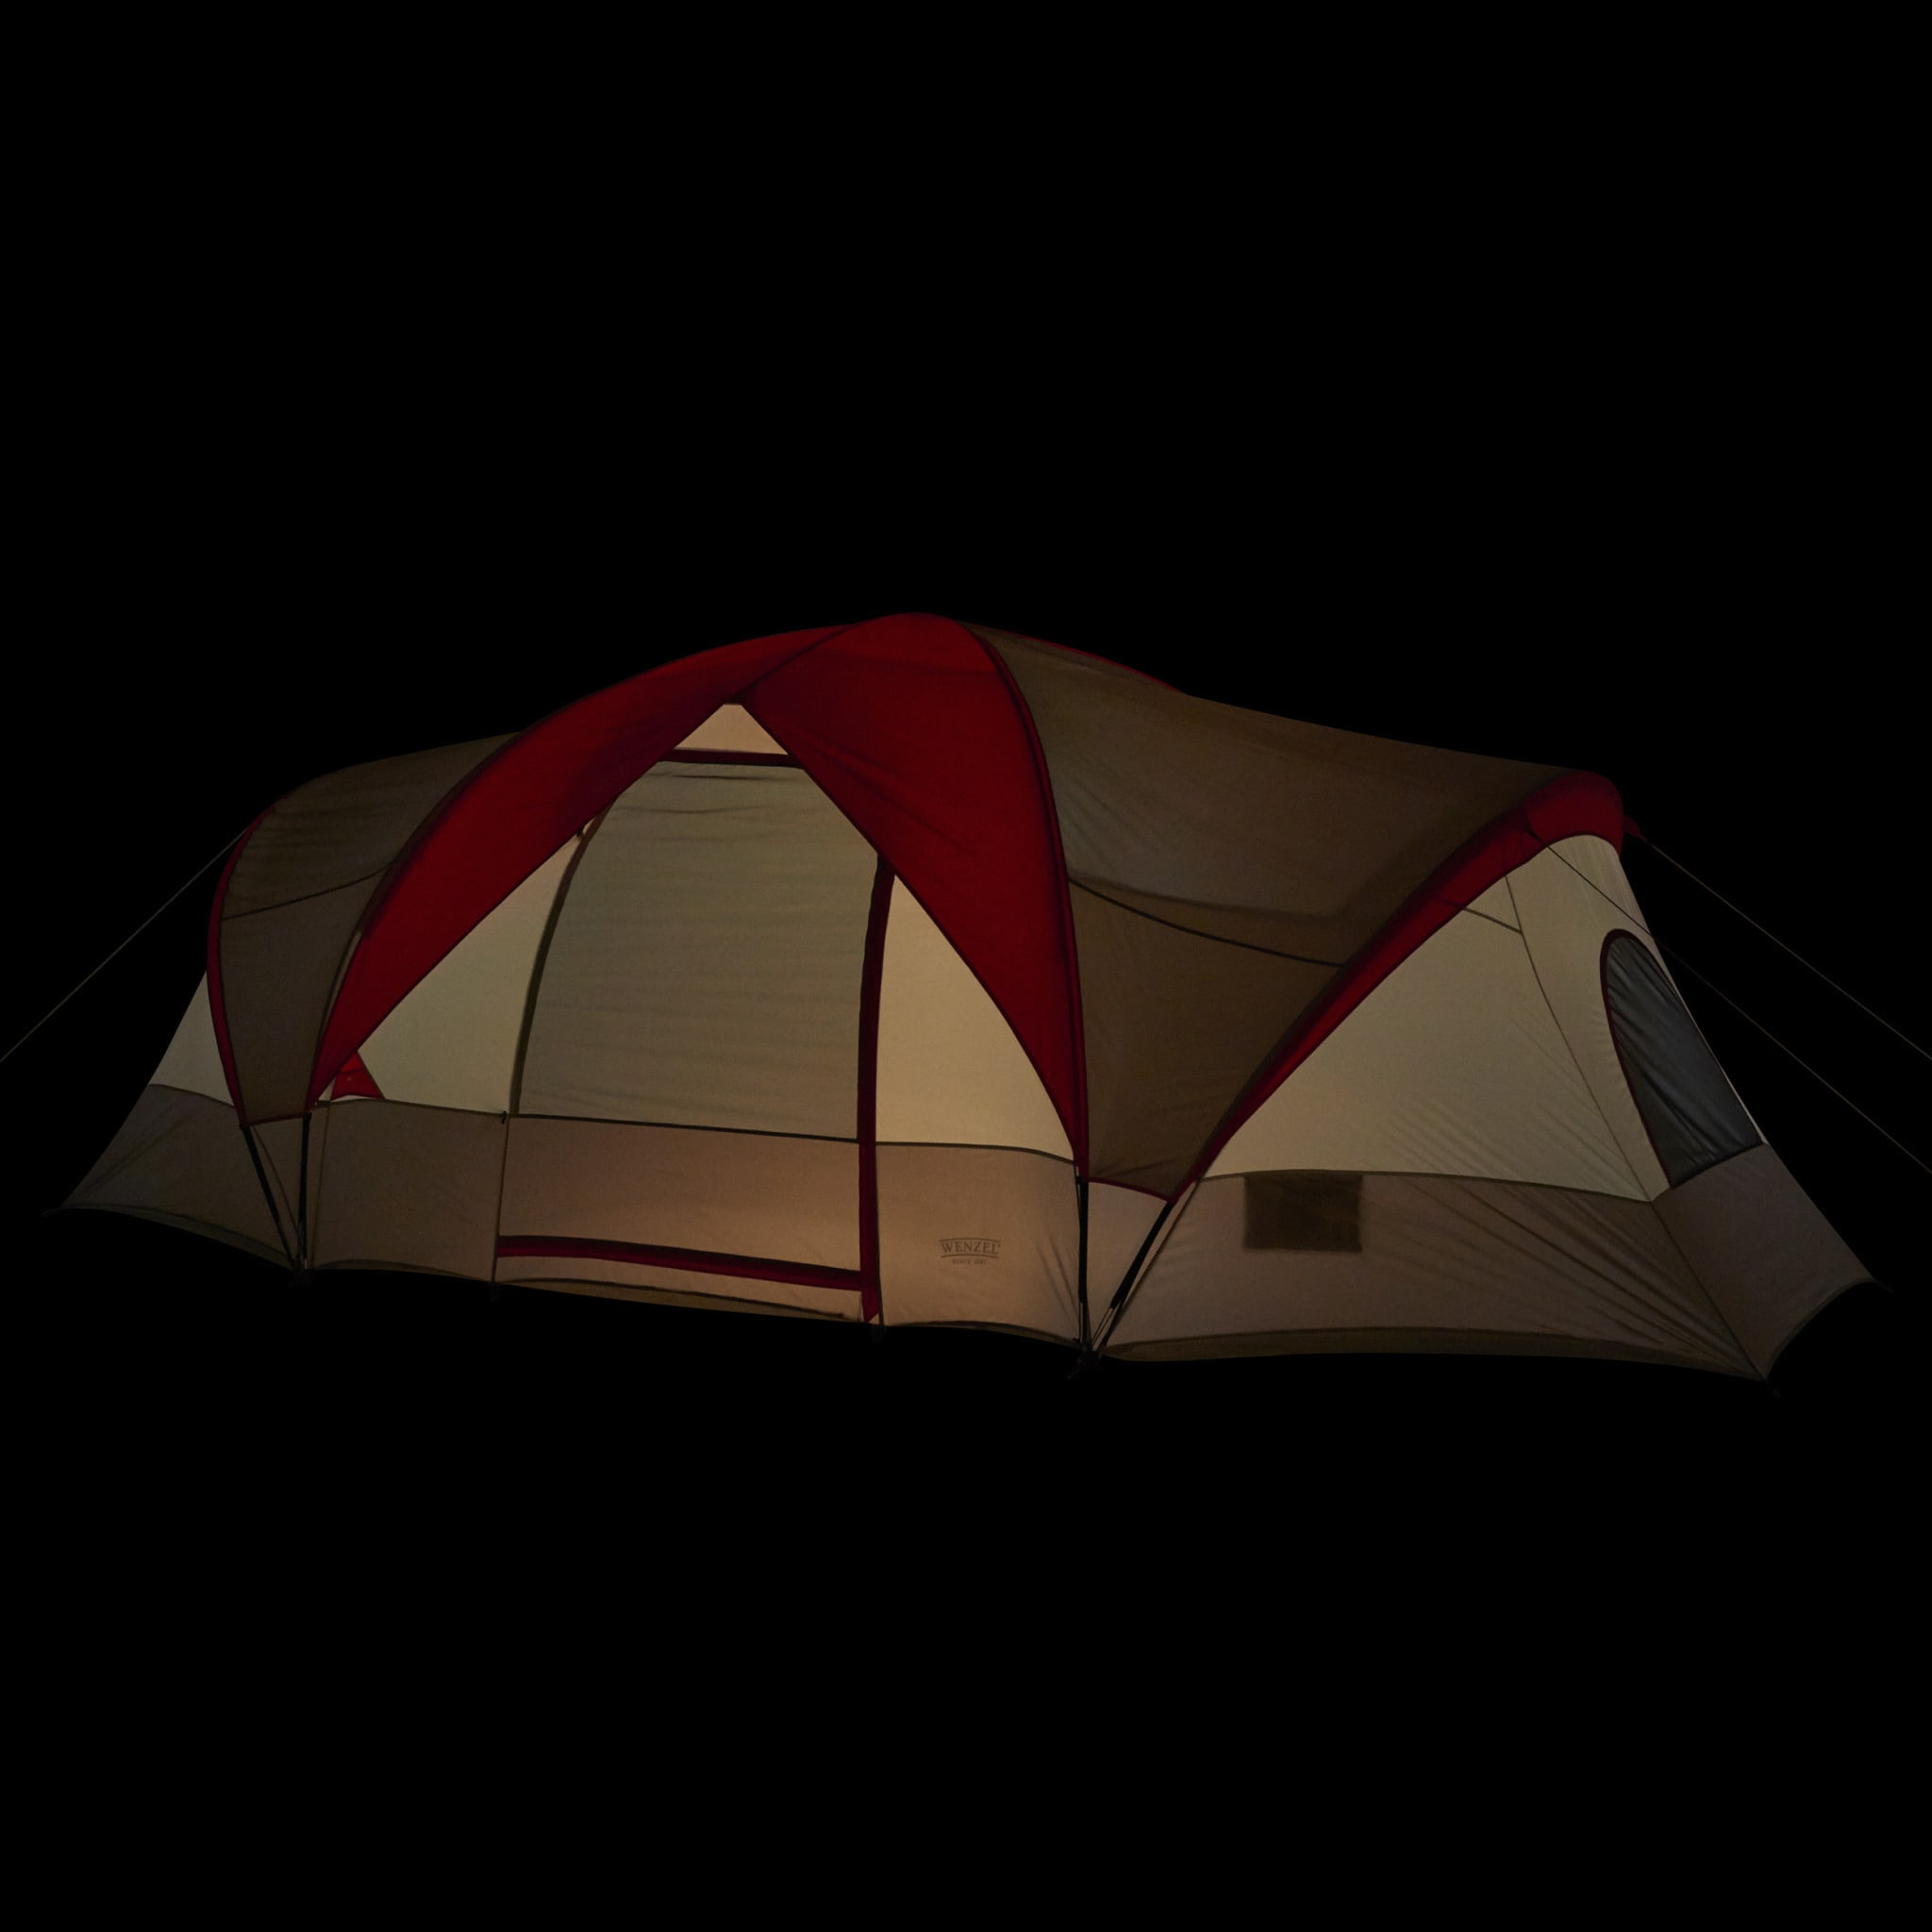 Wenzel Great Basin 10-person 3-room Tent - Free Shipping Today - Overstock.com - 16751921 & Wenzel Great Basin 10-person 3-room Tent - Free Shipping Today ...